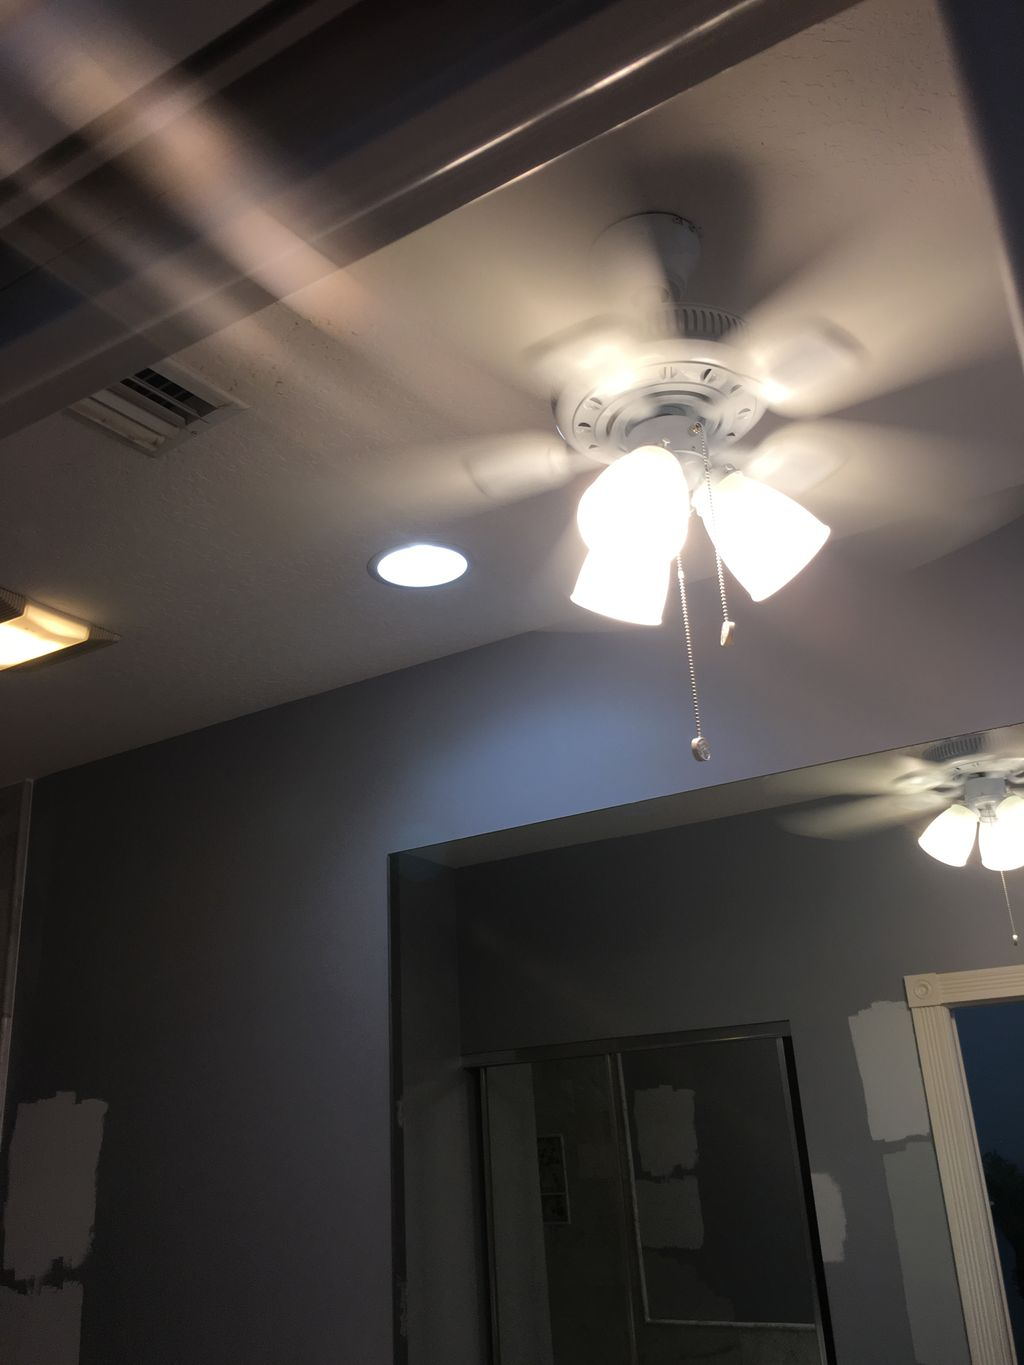 Installed new ceiling fan